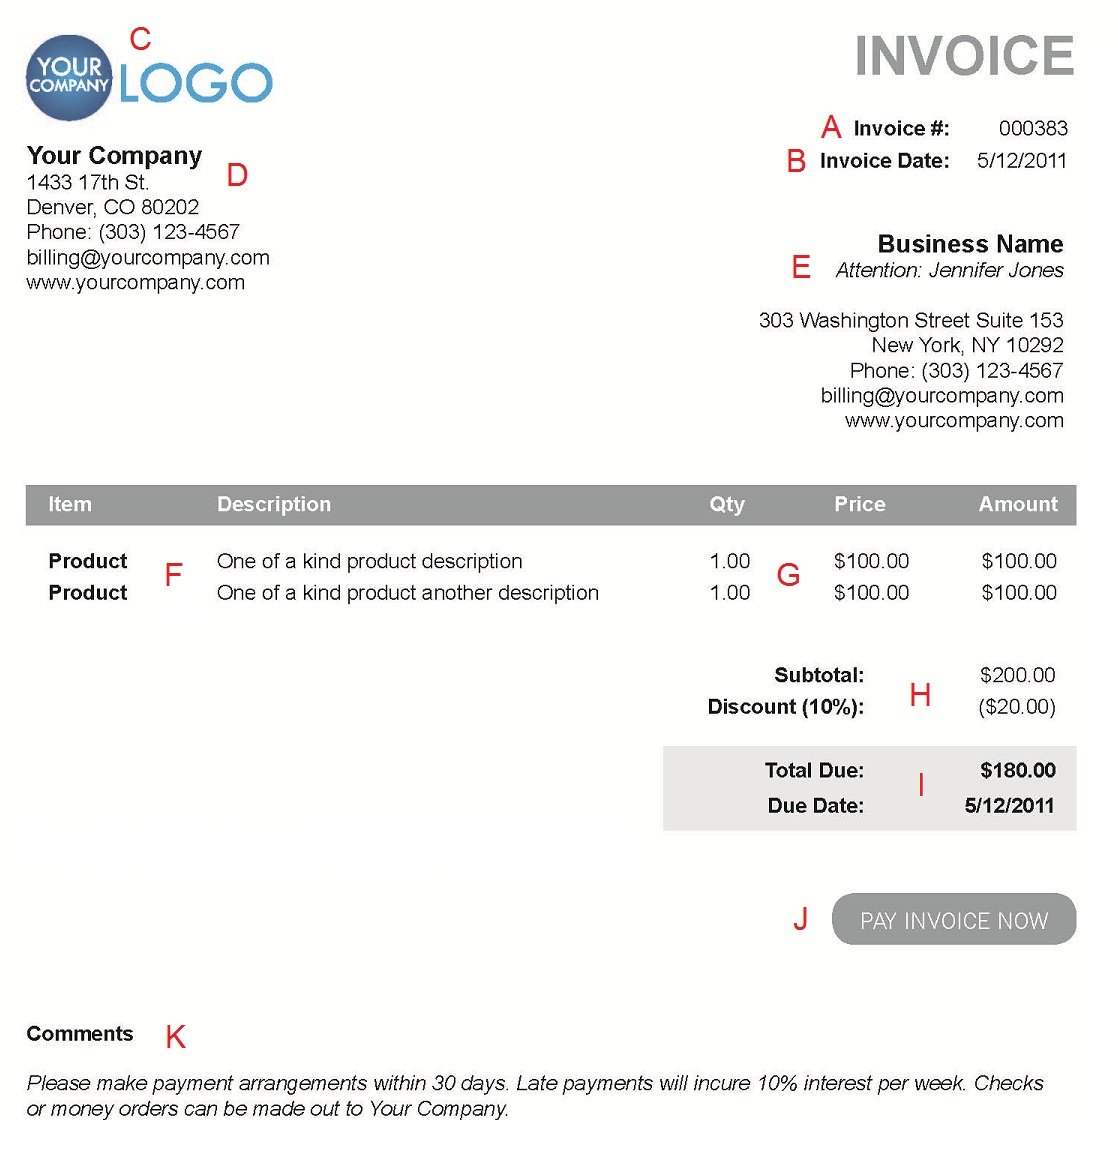 Opposenewapstandardsus  Pleasing The  Different Sections Of An Electronic Payment Invoice With Hot A  With Easy On The Eye Security Deposit Return Receipt Also Receipts Template Word In Addition Lumper Receipt Template And Taxi Receipt Image As Well As Cake Receipt Additionally Receipt Of Delivery From Paysimplecom With Opposenewapstandardsus  Hot The  Different Sections Of An Electronic Payment Invoice With Easy On The Eye A  And Pleasing Security Deposit Return Receipt Also Receipts Template Word In Addition Lumper Receipt Template From Paysimplecom